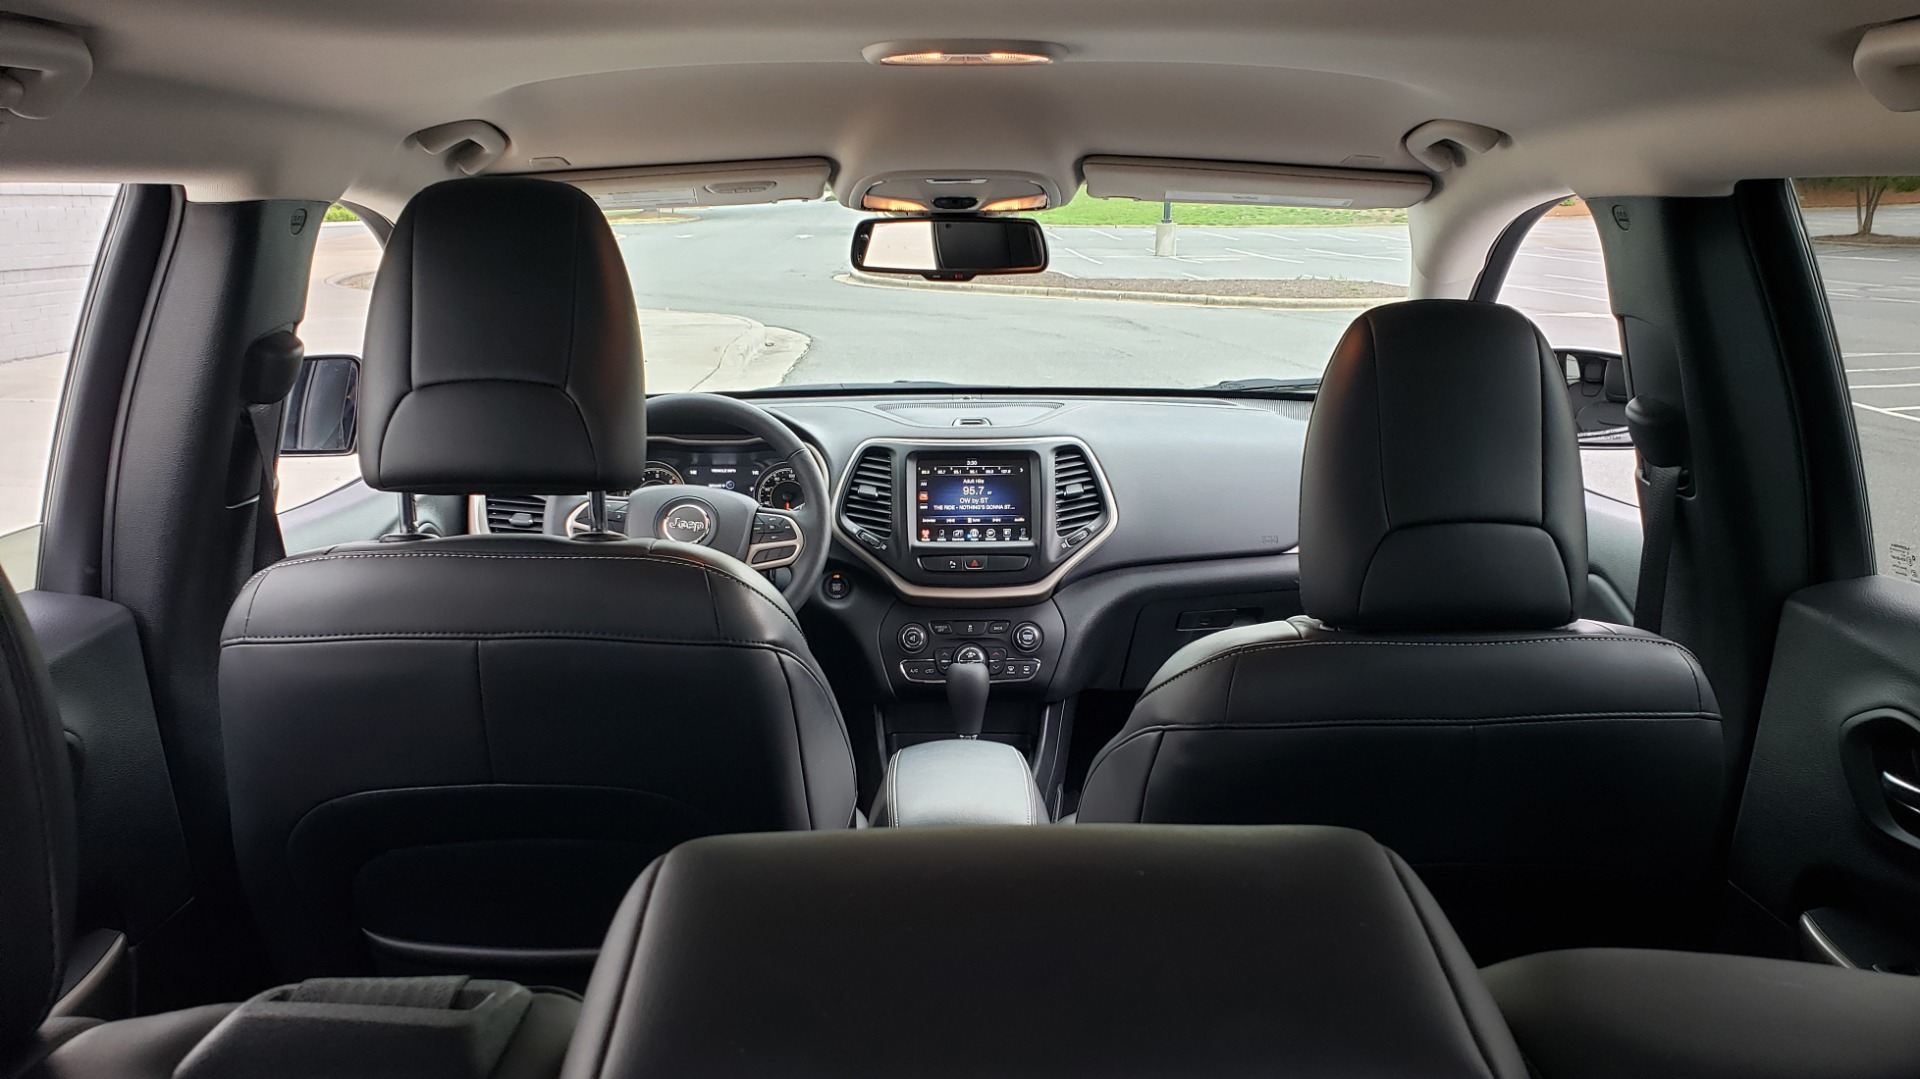 Used 2018 Jeep CHEROKEE LIMITED HIGH ALTITUDE FWD / PARK ASST / BLIND SPOT / REARVIEW for sale $20,995 at Formula Imports in Charlotte NC 28227 17